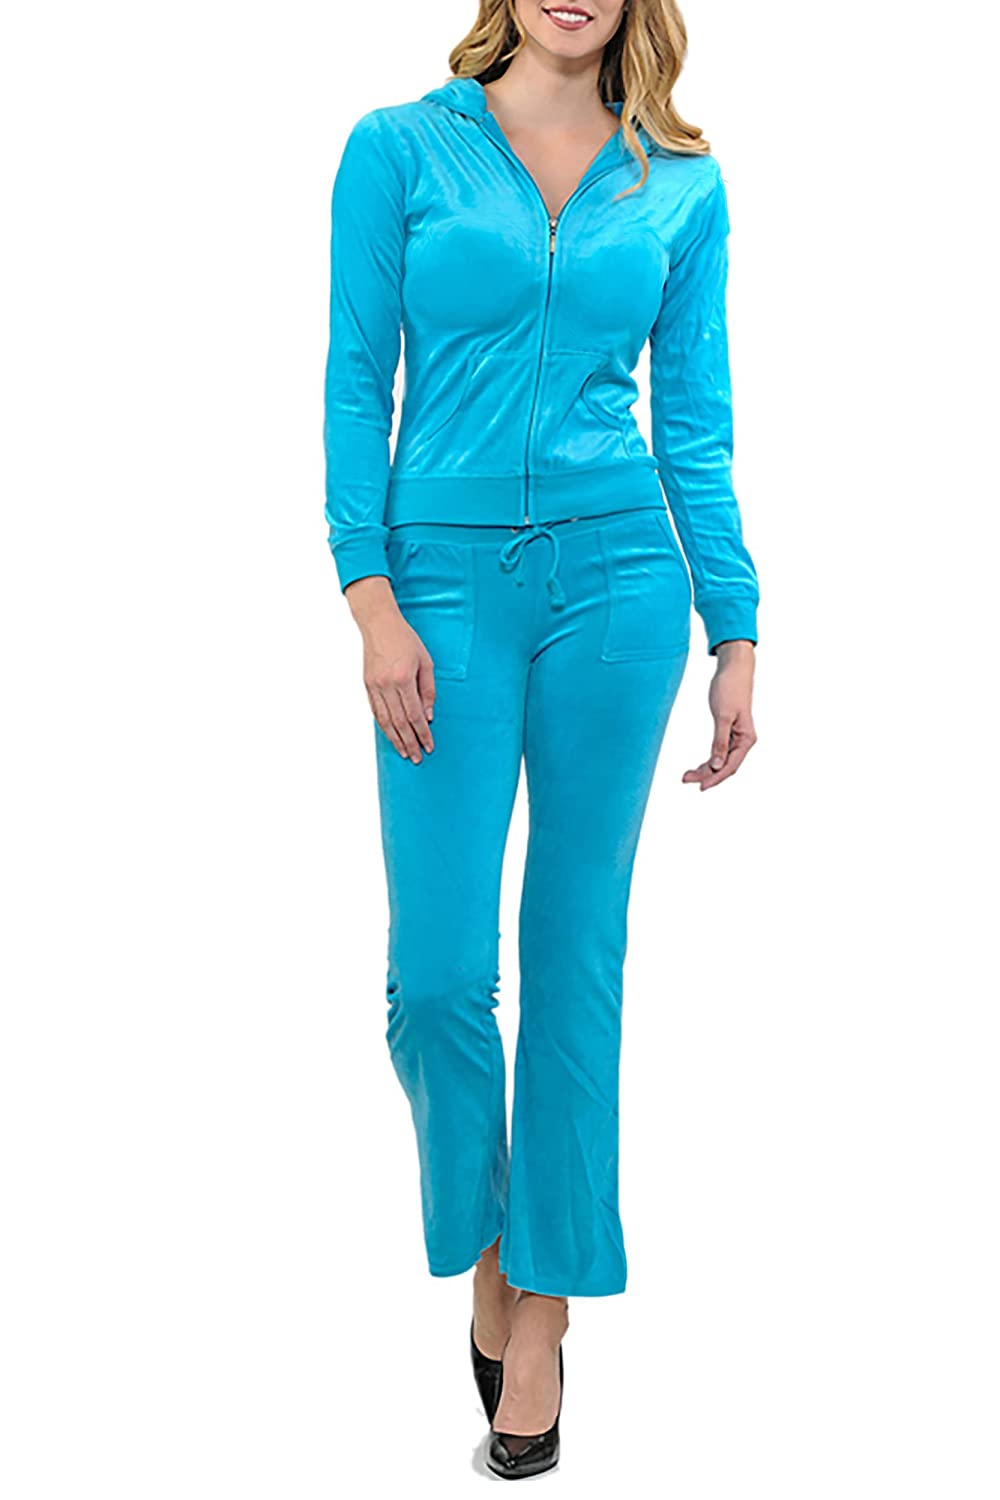 ViiViiKay Women's Soft Velour Tracksuit Athletic Zip Up Hoodie & Sweat Pants Set